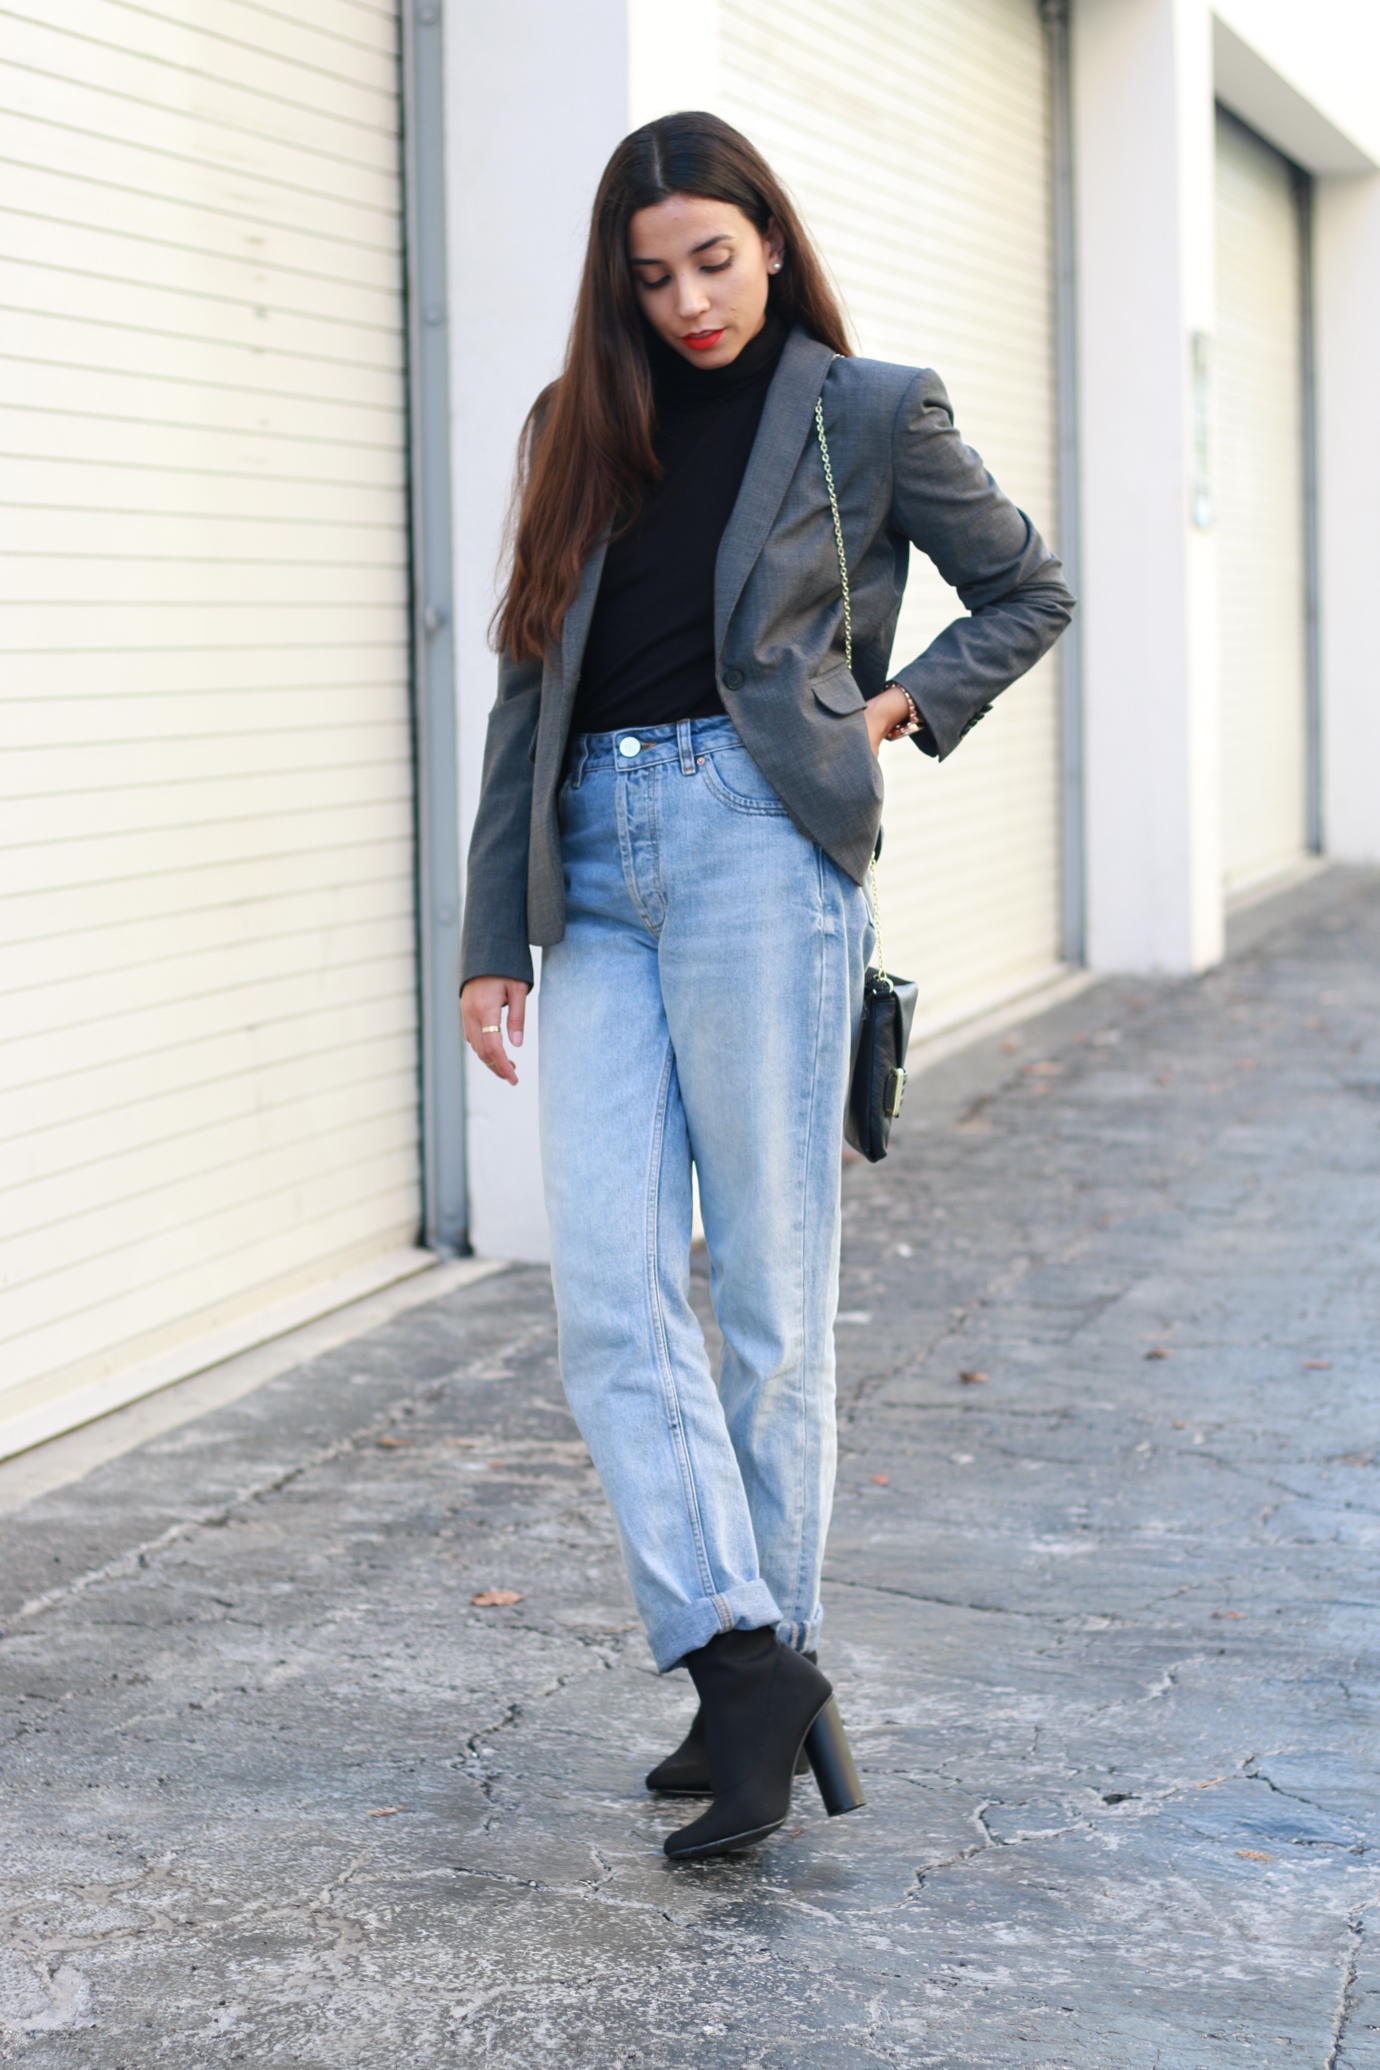 the-blazer-look-fall-trends-2